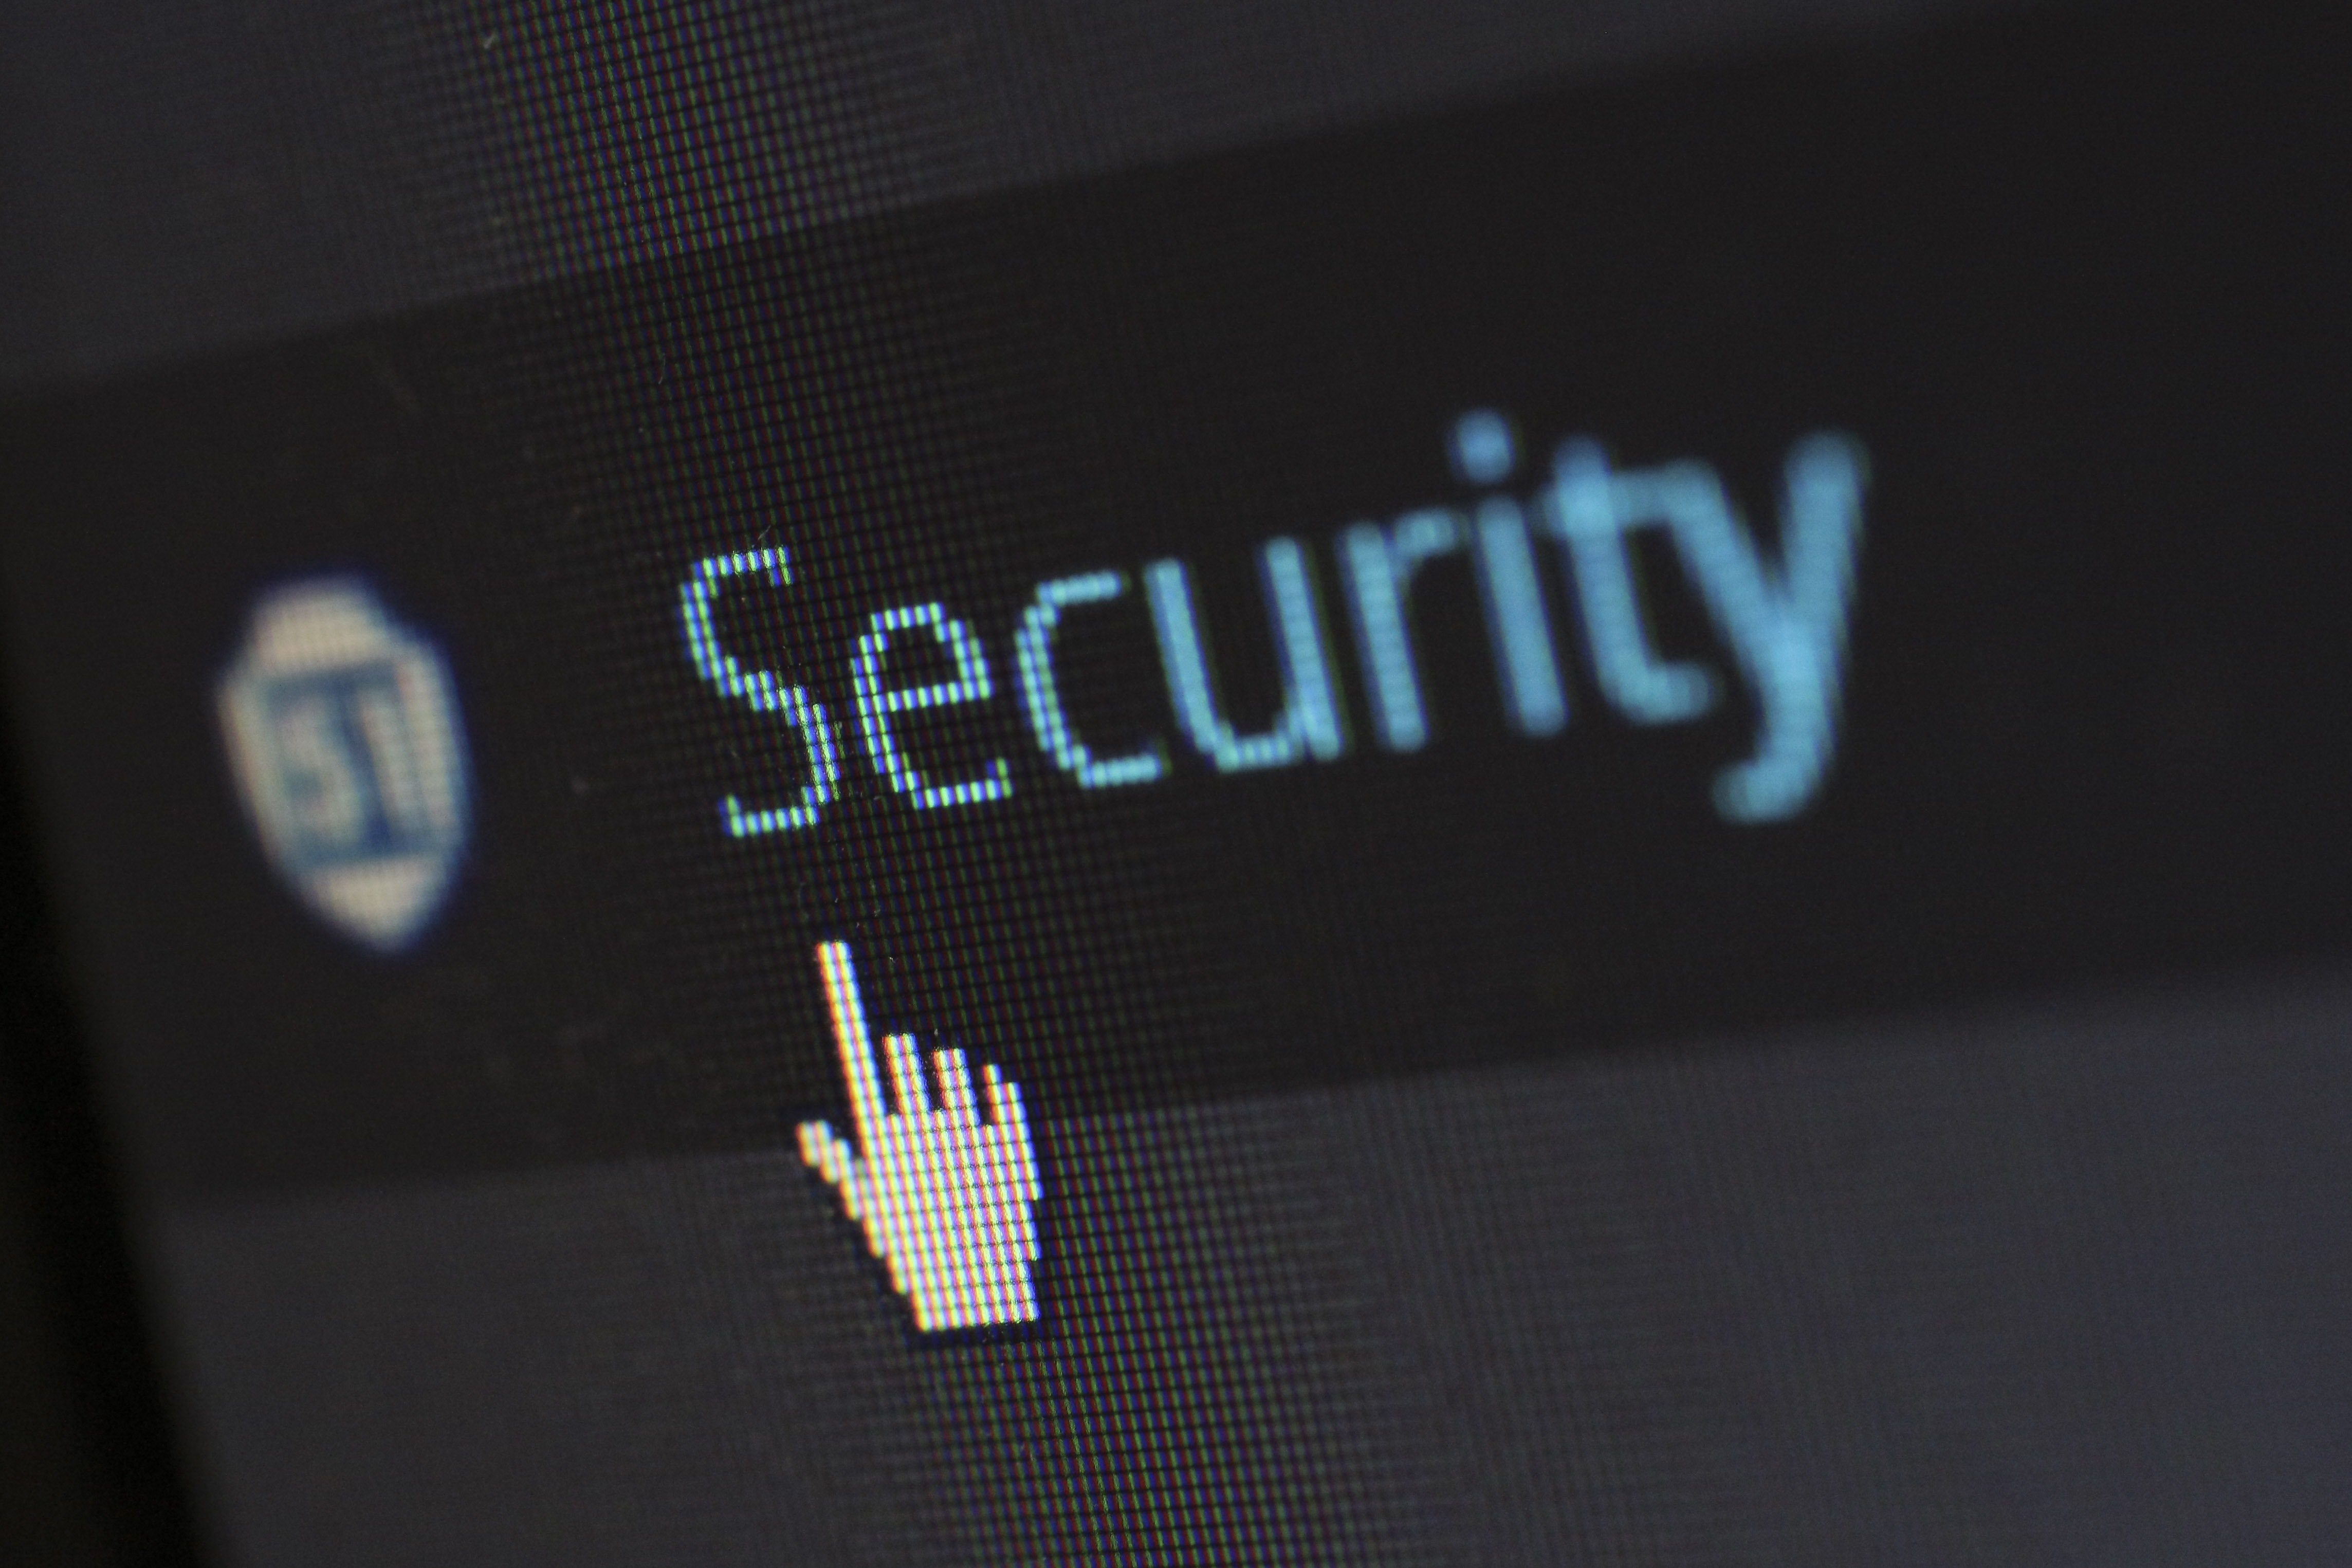 Cyber security and computer screen